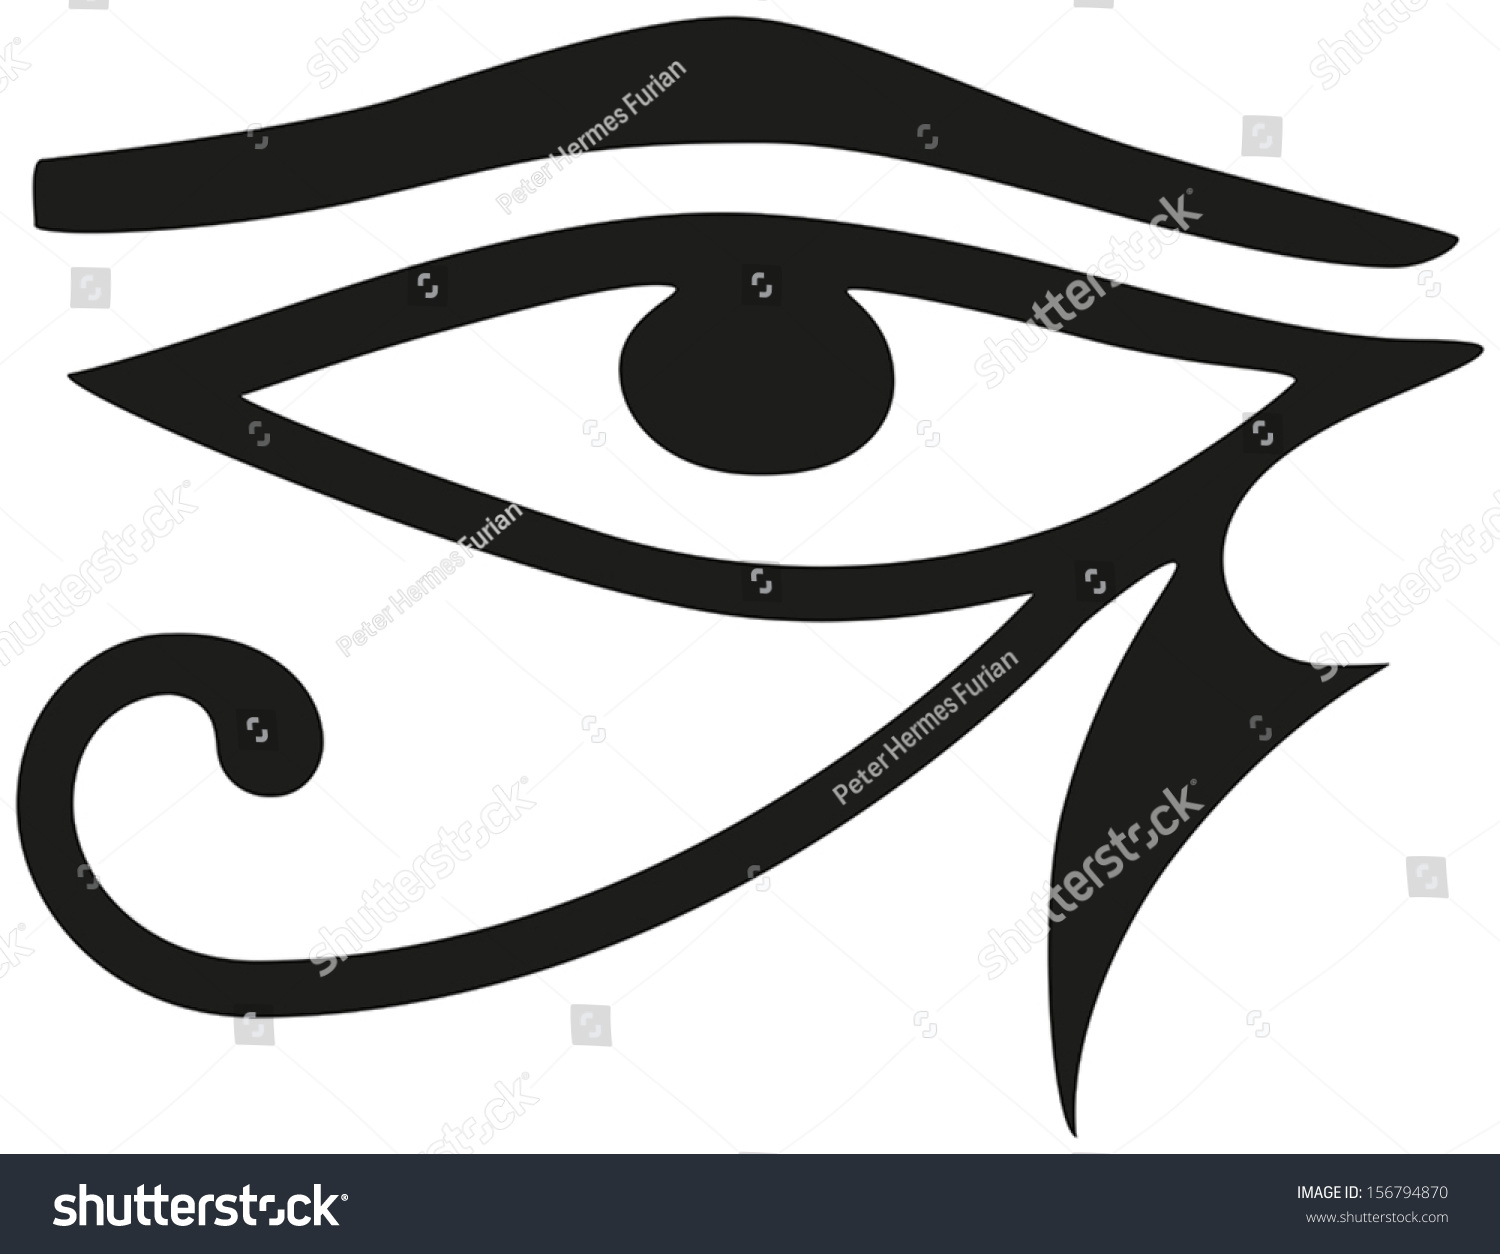 Eye Of Horus A Powerful Symbol From Ancient Egypt